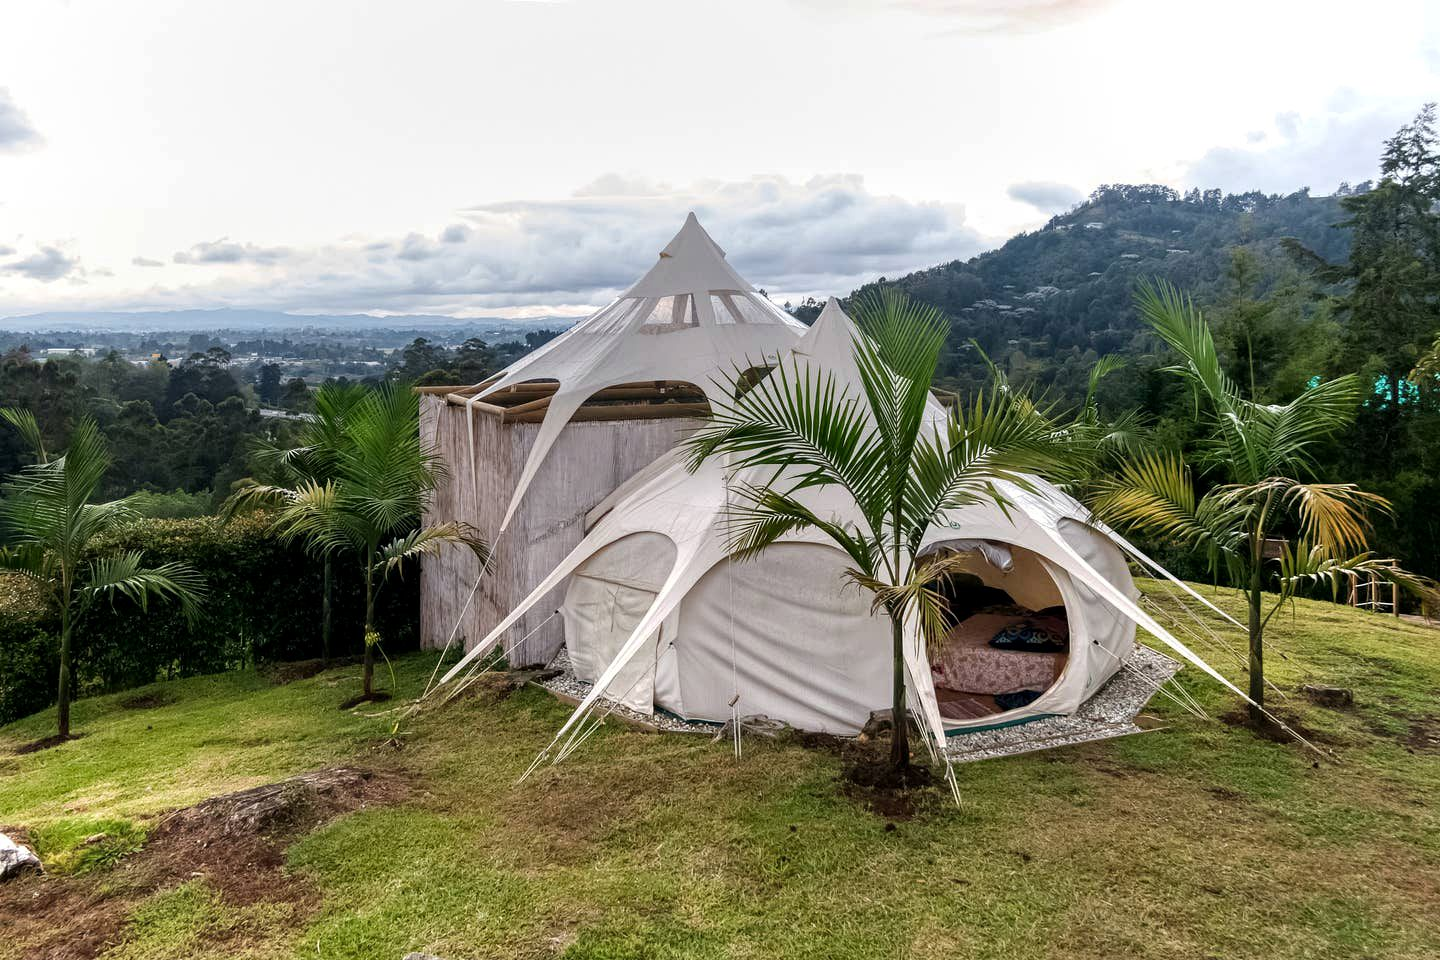 Bell Tents (Rionegro, Antioquia, Colombia)